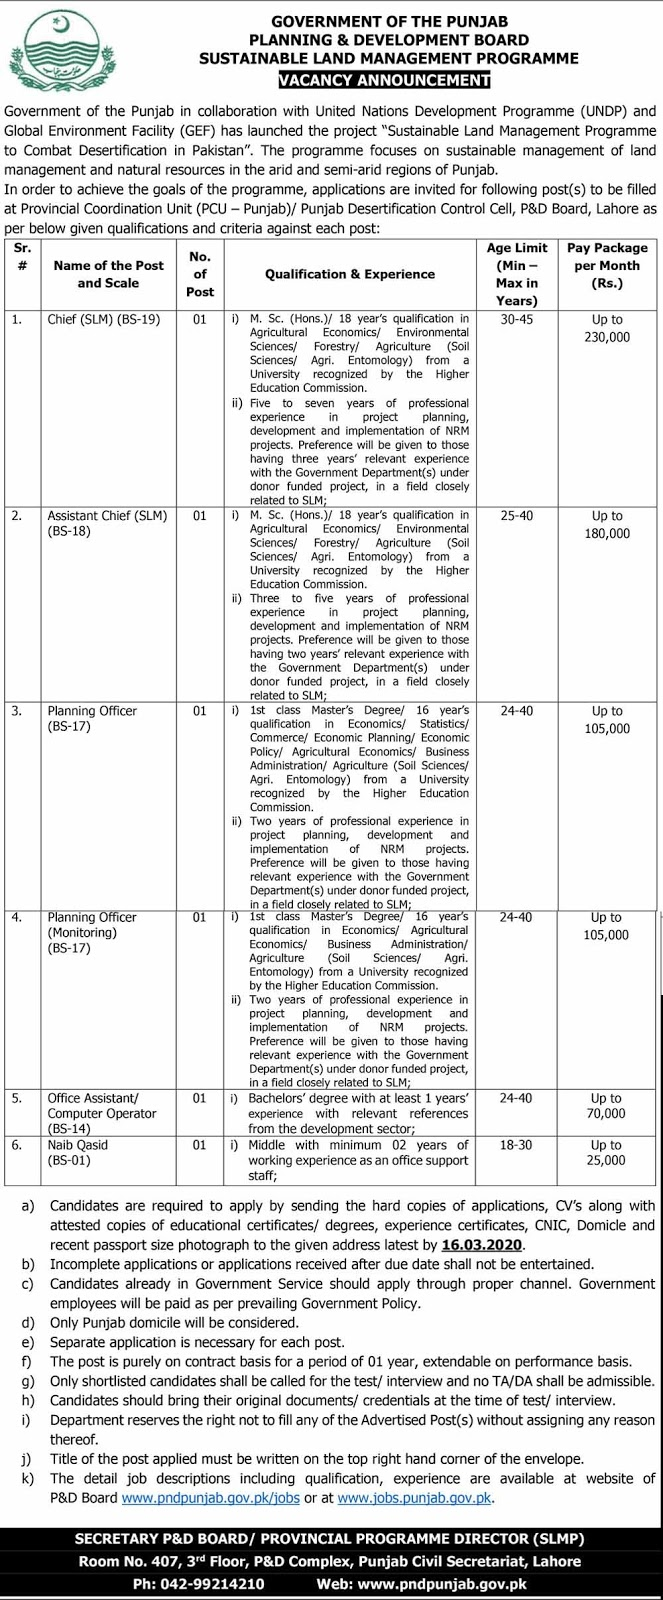 Latest jobs in Planning and Development Department Govt of the Punjab For Chief, Assistant Chief 2020